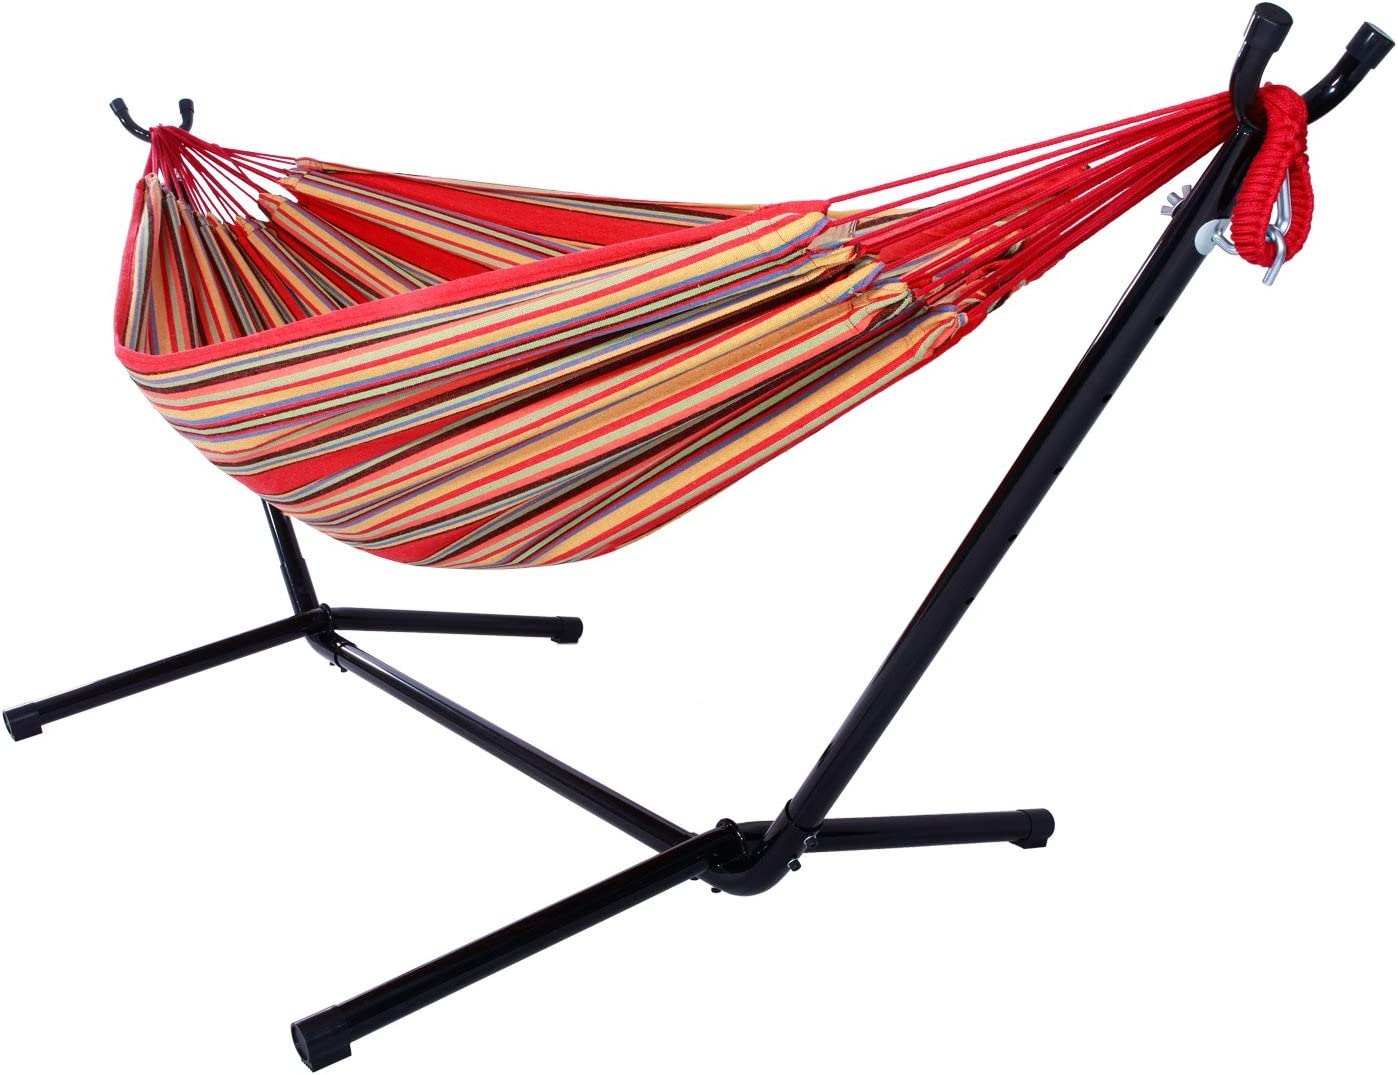 Lovinland Hammock with Space Saving Hammock Stand Portable Hammock Set for Indoor Outdoor Use red